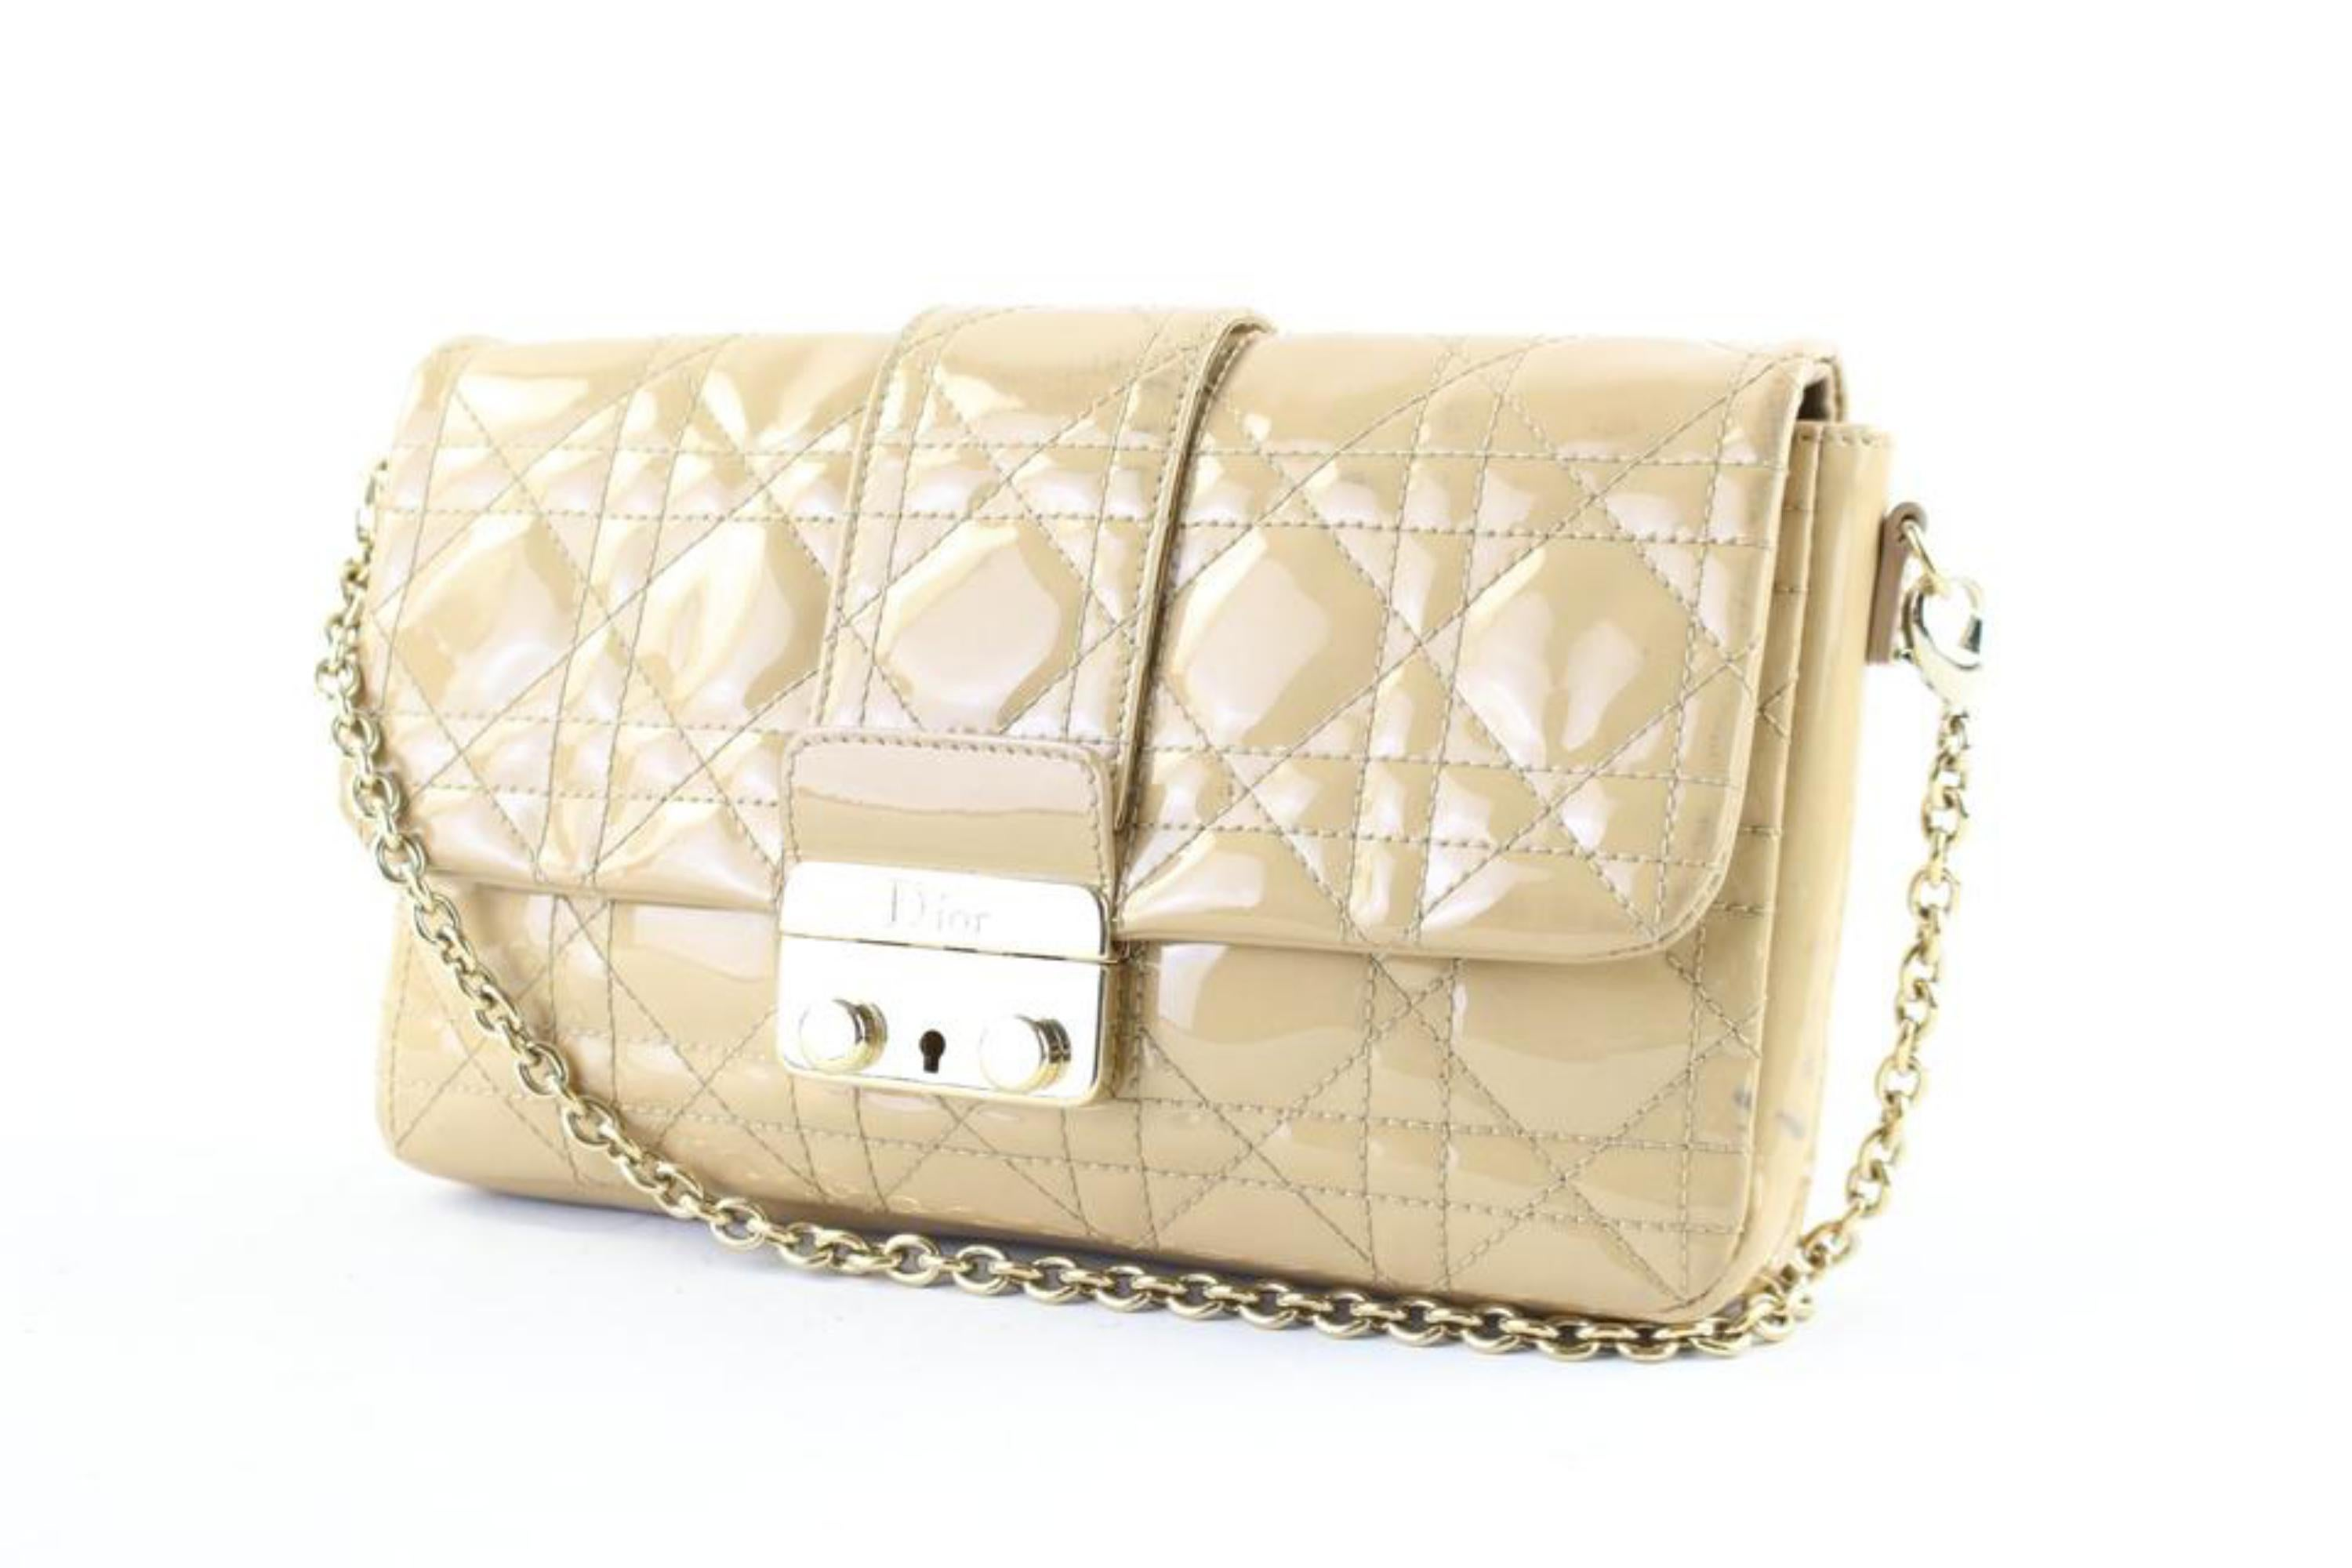 883dfb2dd11a Dior Cannage New Lock Pouch 23dr1127 Beige Patent Leather Cross Body Bag  For Sale at 1stdibs